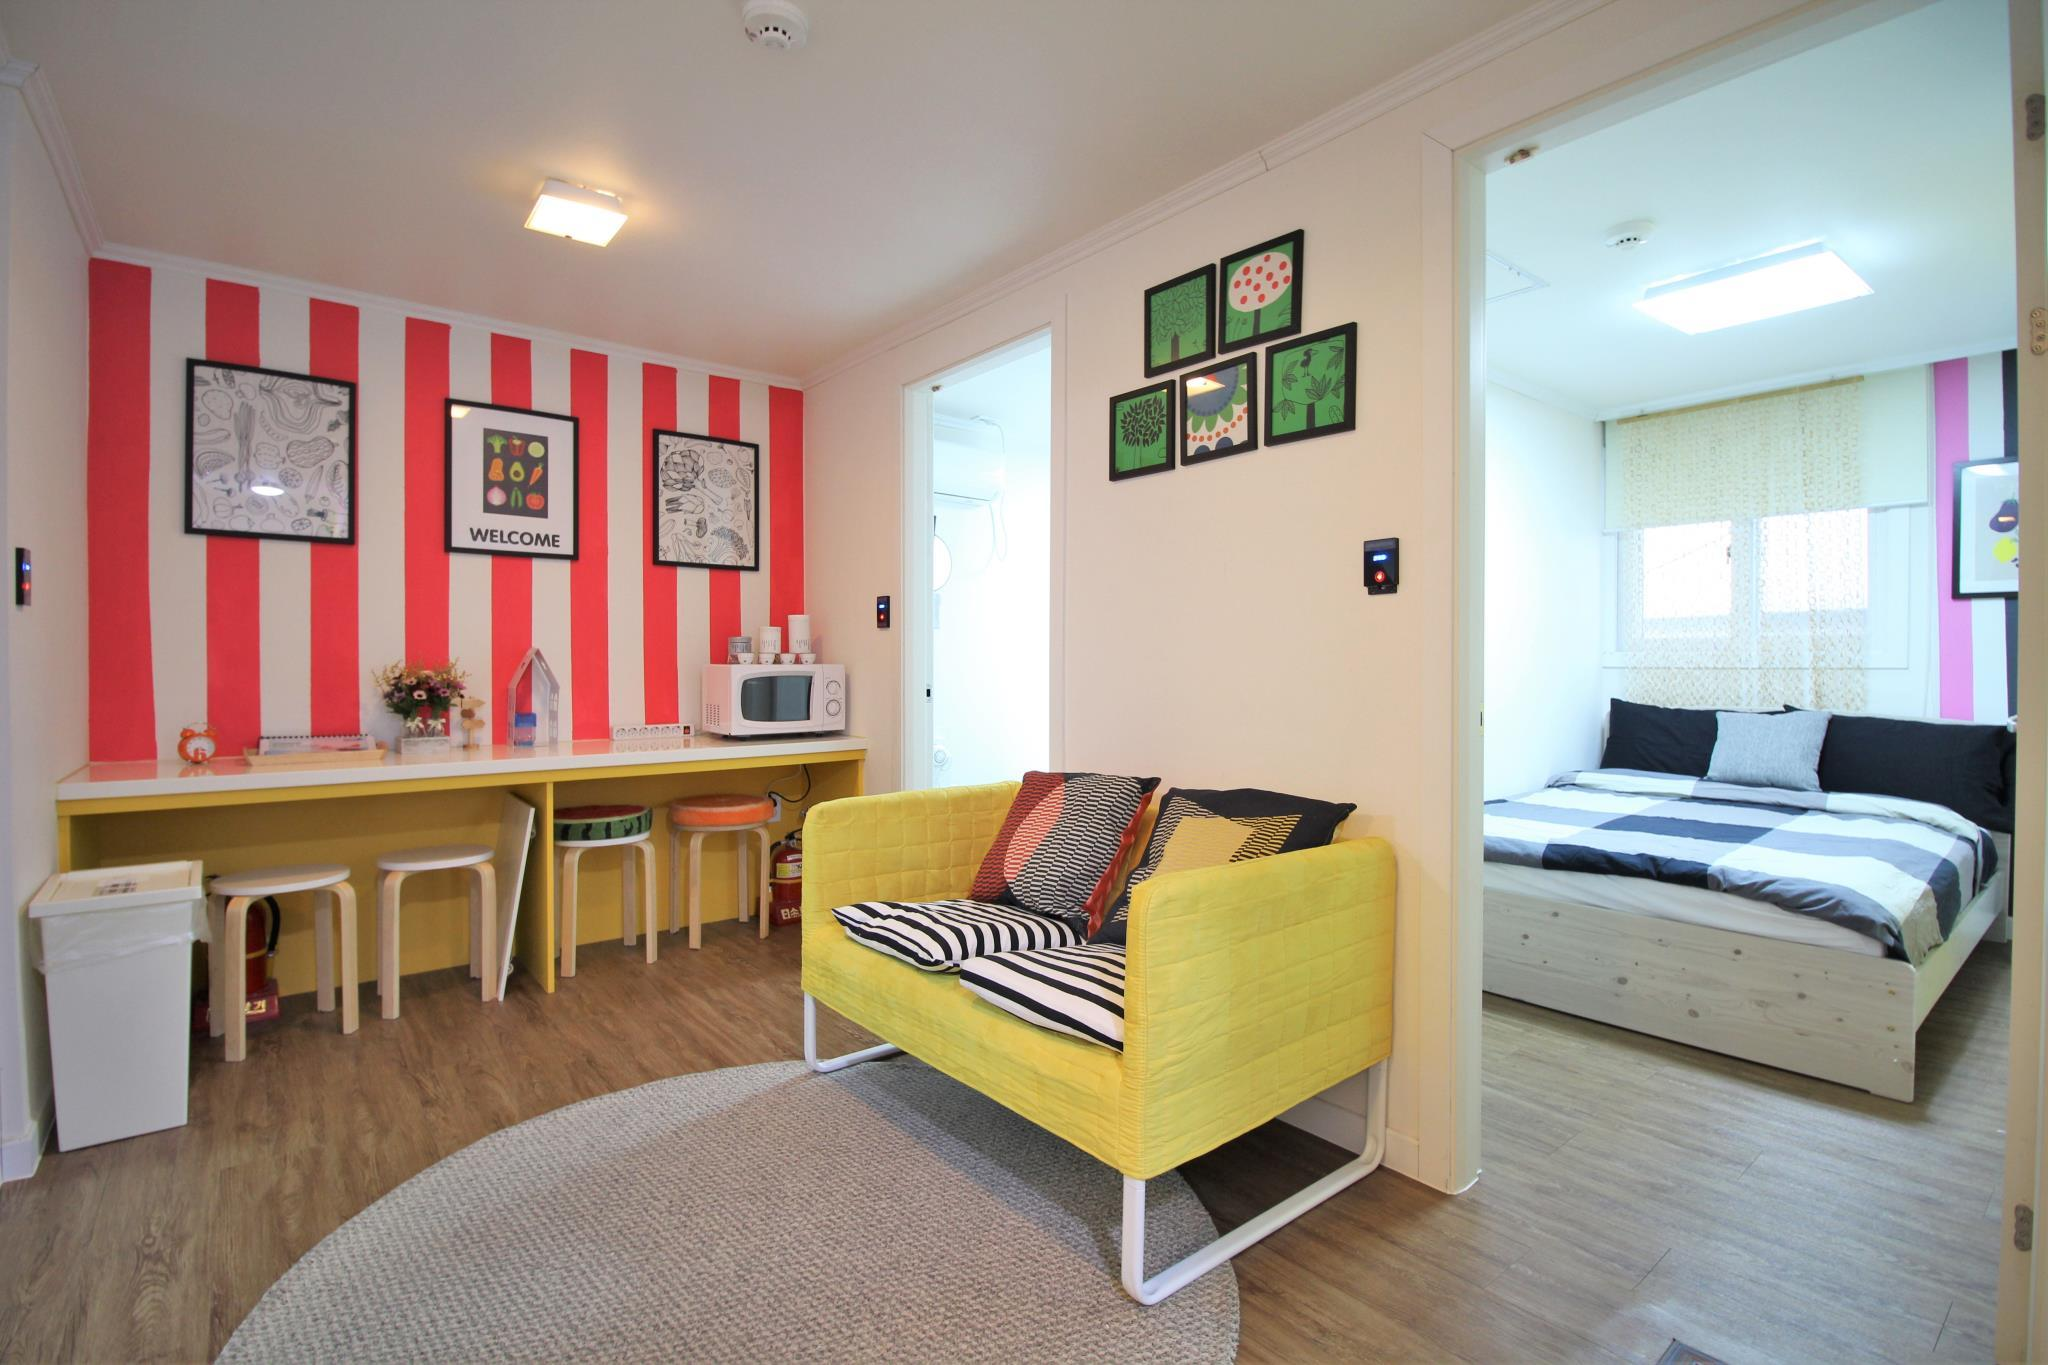 Njoy Guest House Foreign Only, Jongro